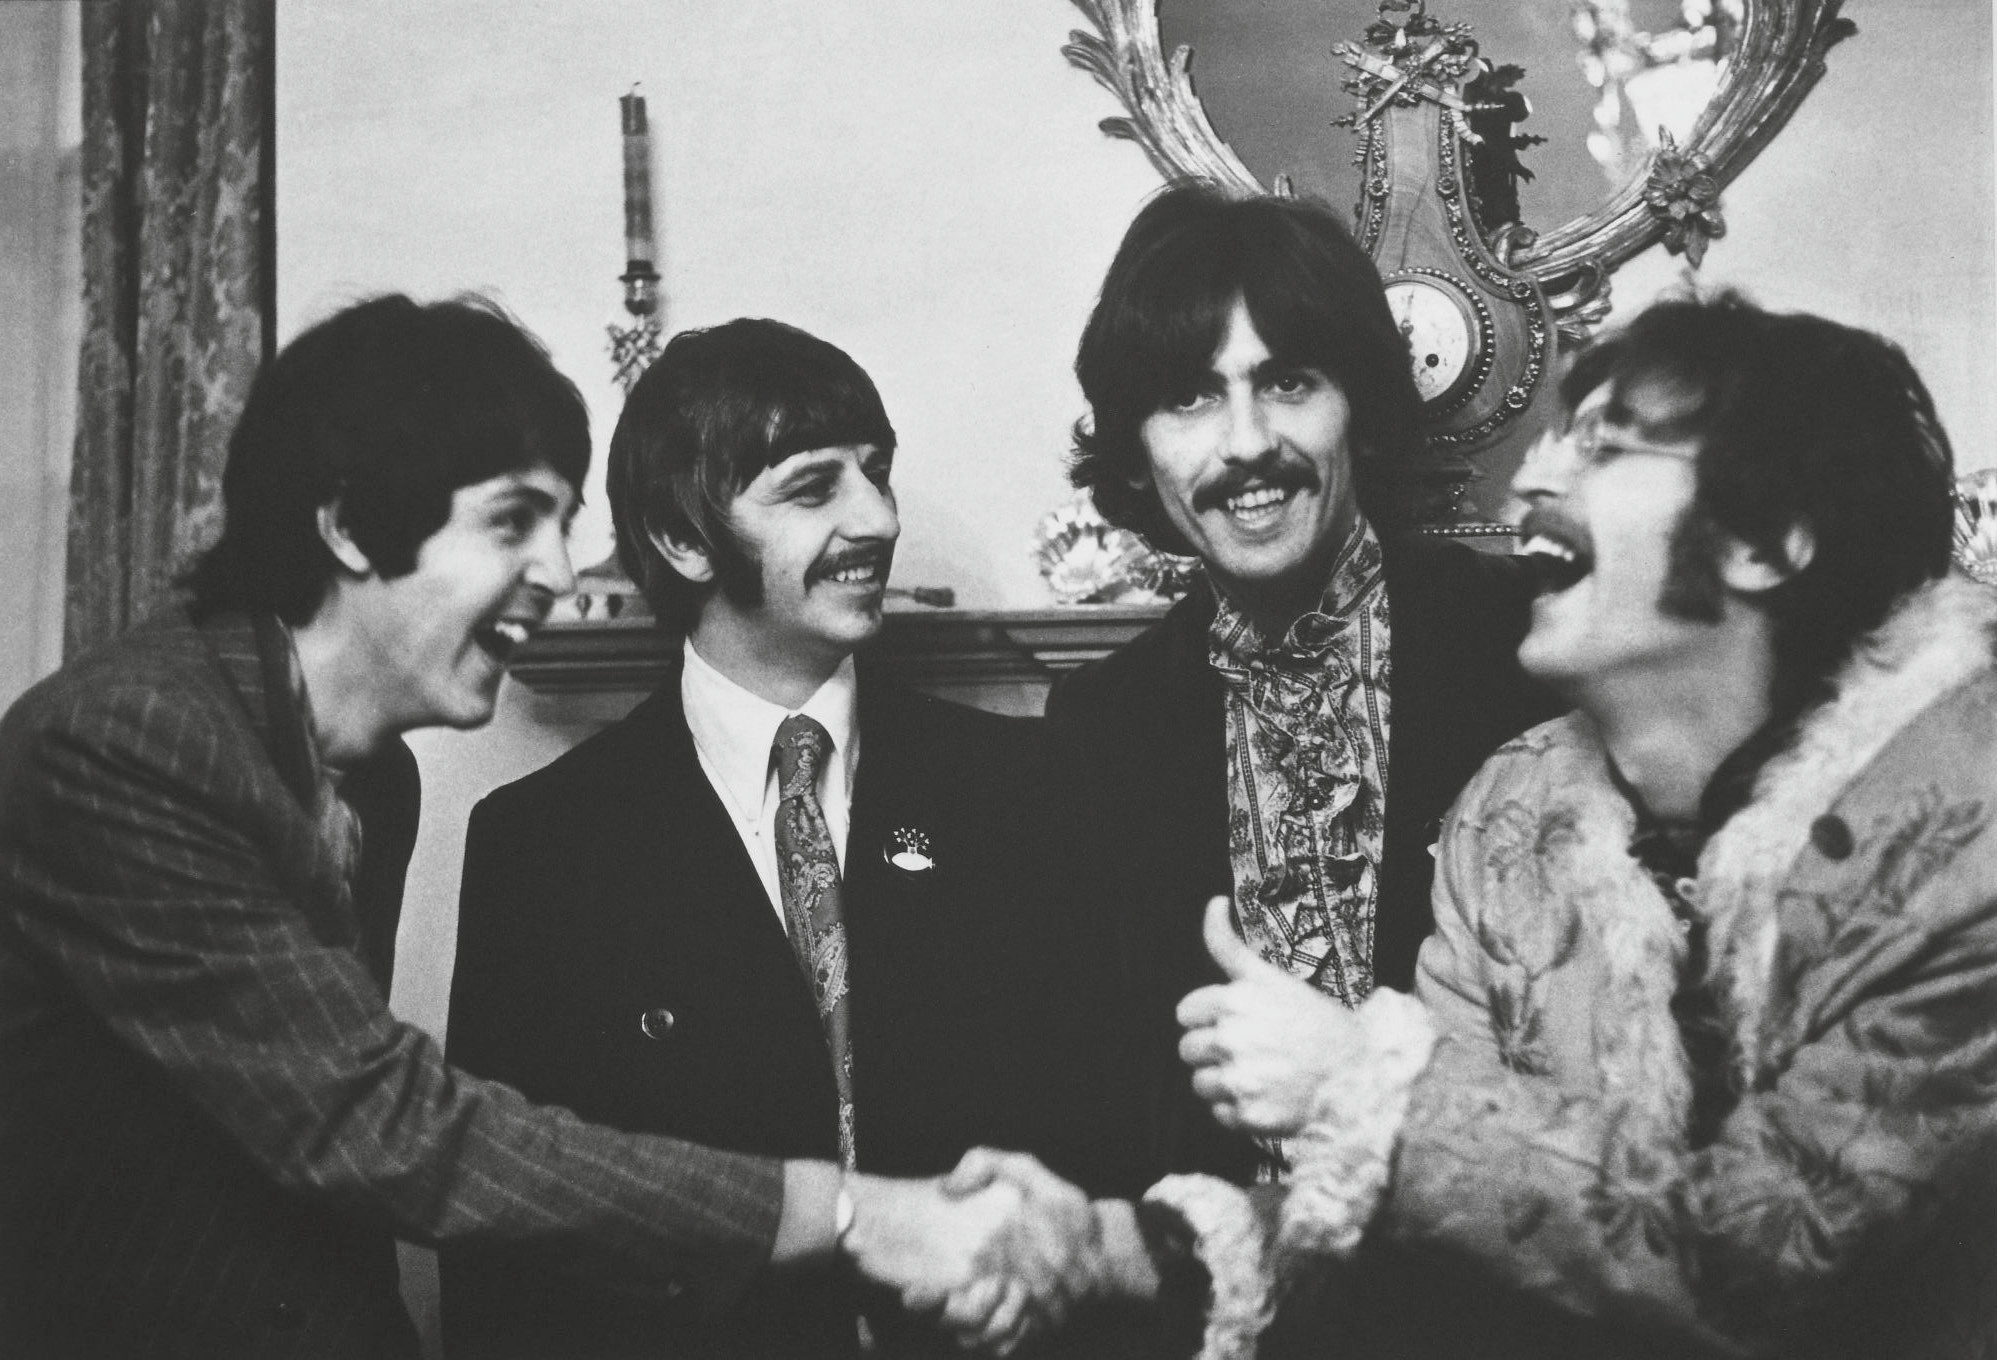 The Beatles at the launch of Sgt Pepper, London, 1967